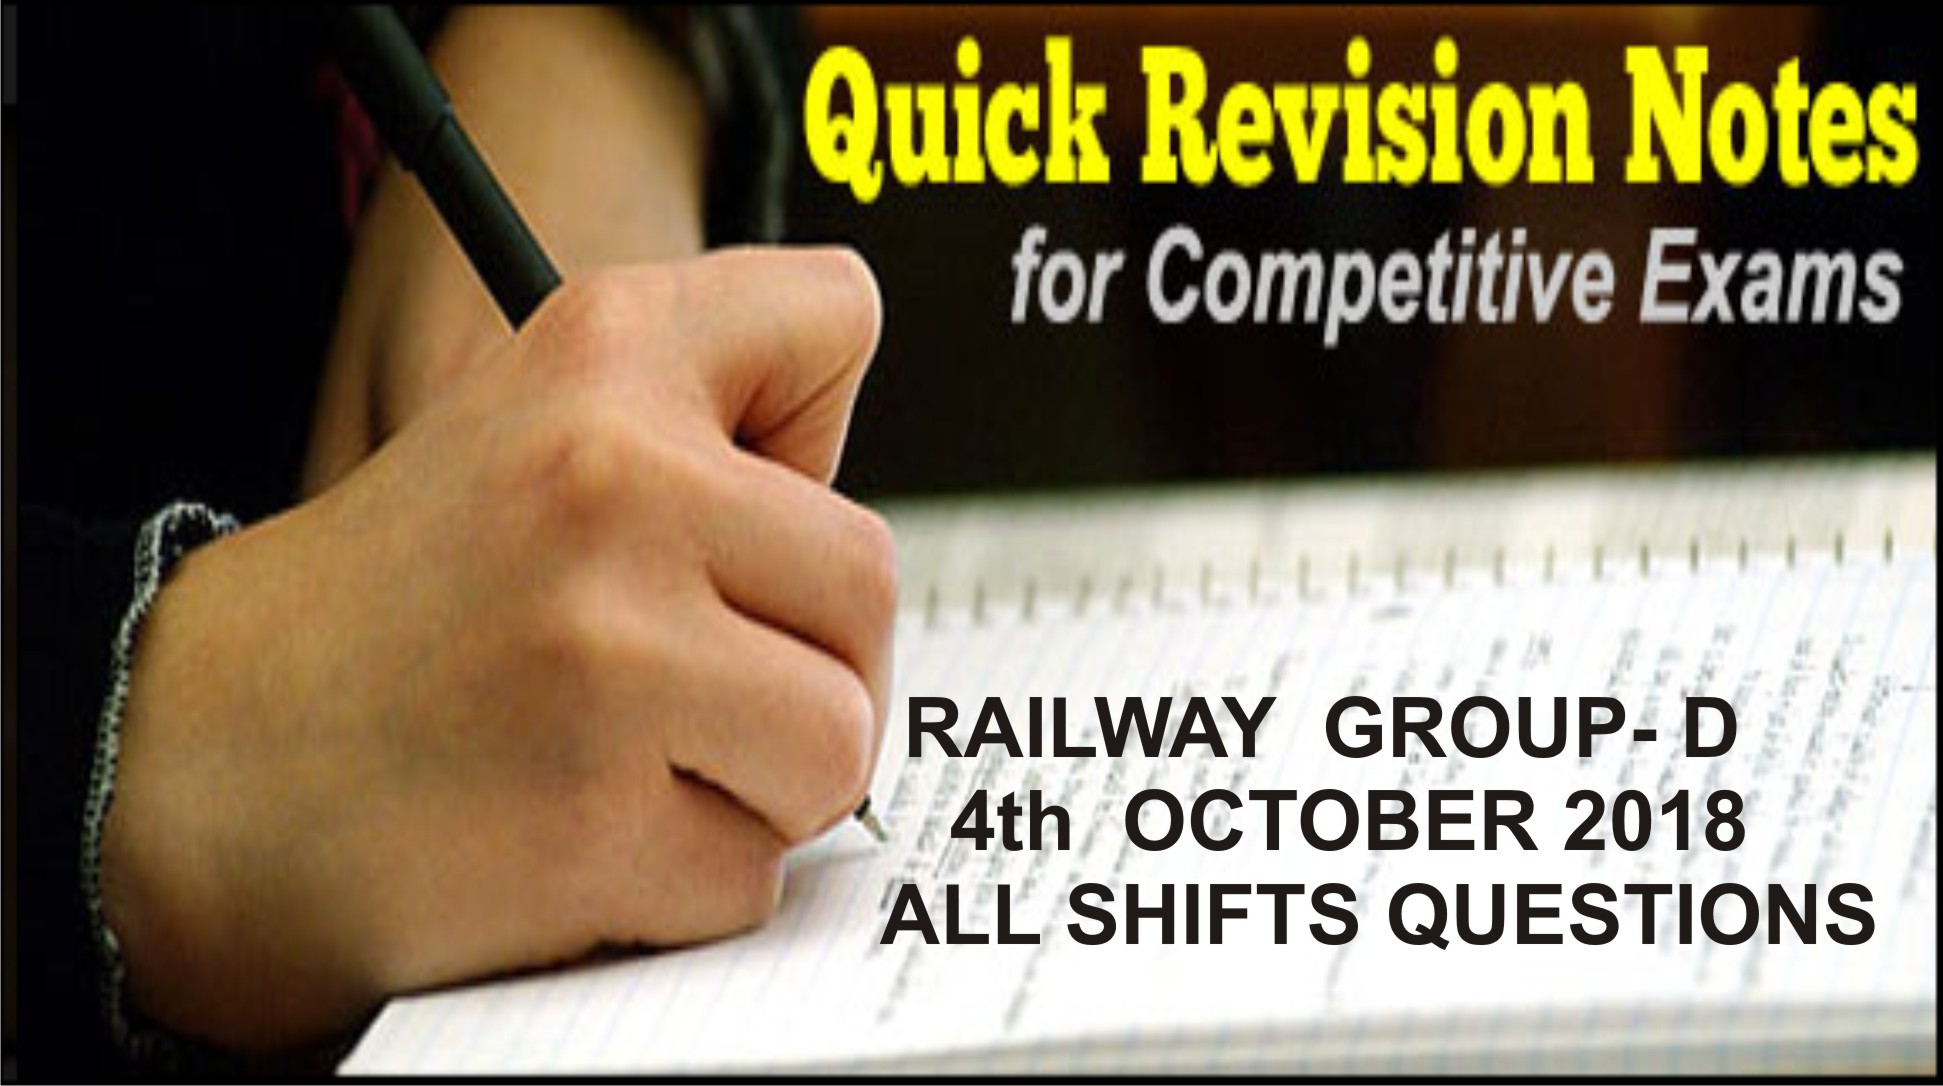 RAILWAY GROUP D 4th OCTOBER 2018 ALL SHIFTS QUESTIONS PDF